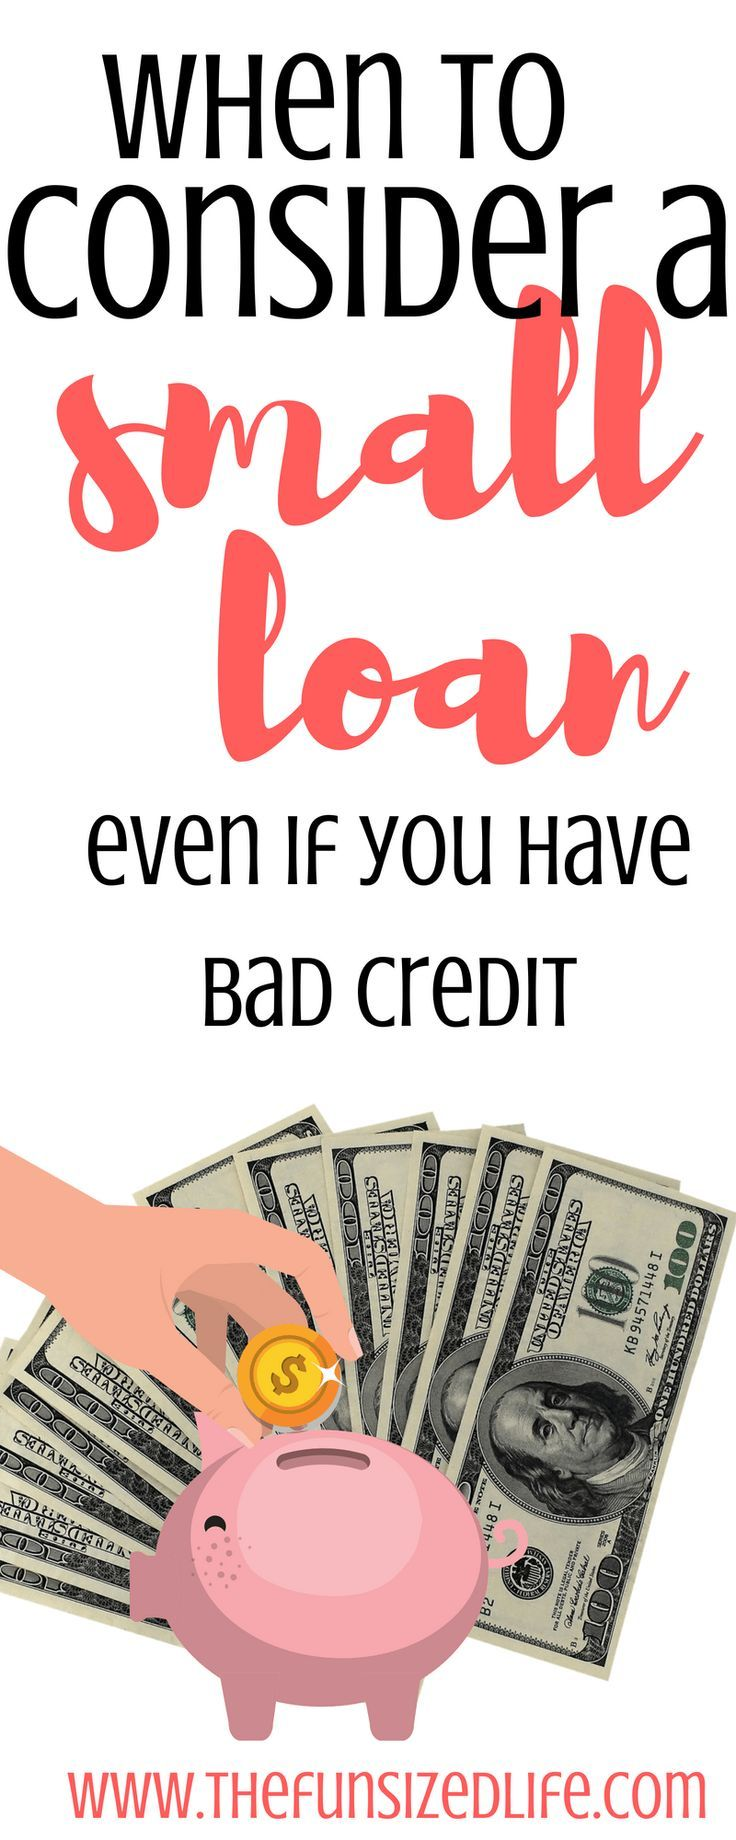 How To Take Out A Personal Loan Even If You Have Bad Credit Bad Credit Personal Loans Money Life Hacks